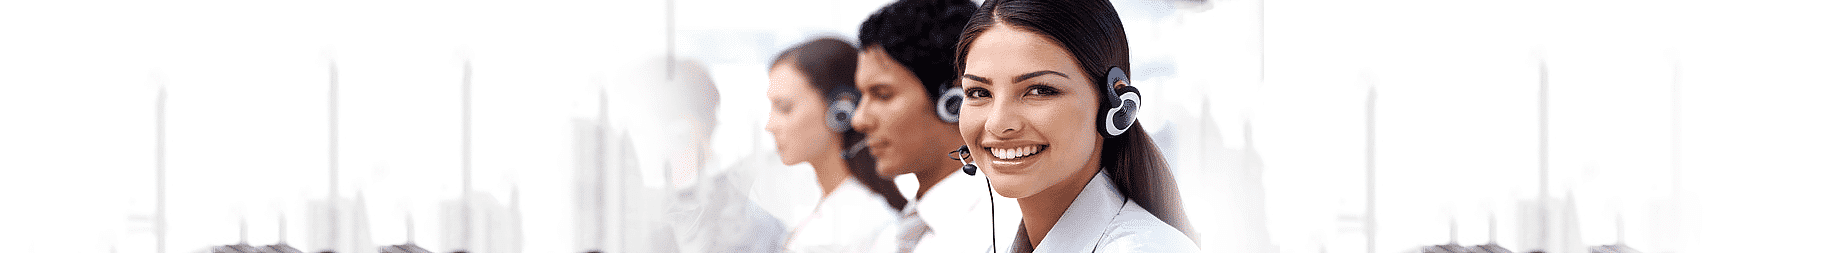 Pakistan Call Centers | External Call Centers | Telemarketing Sales Call Center | Consultation | Call Center Services | External Call Center | Worldwide Call Centers - Your Telemarketing Experts | Outbound Telemarketing Outsourcing | Call Center Outsourcing Guidelines | Call Center Sales | Pakistani Call Centers | Call Centers in Pakistan | Call Centers in Southern Asia